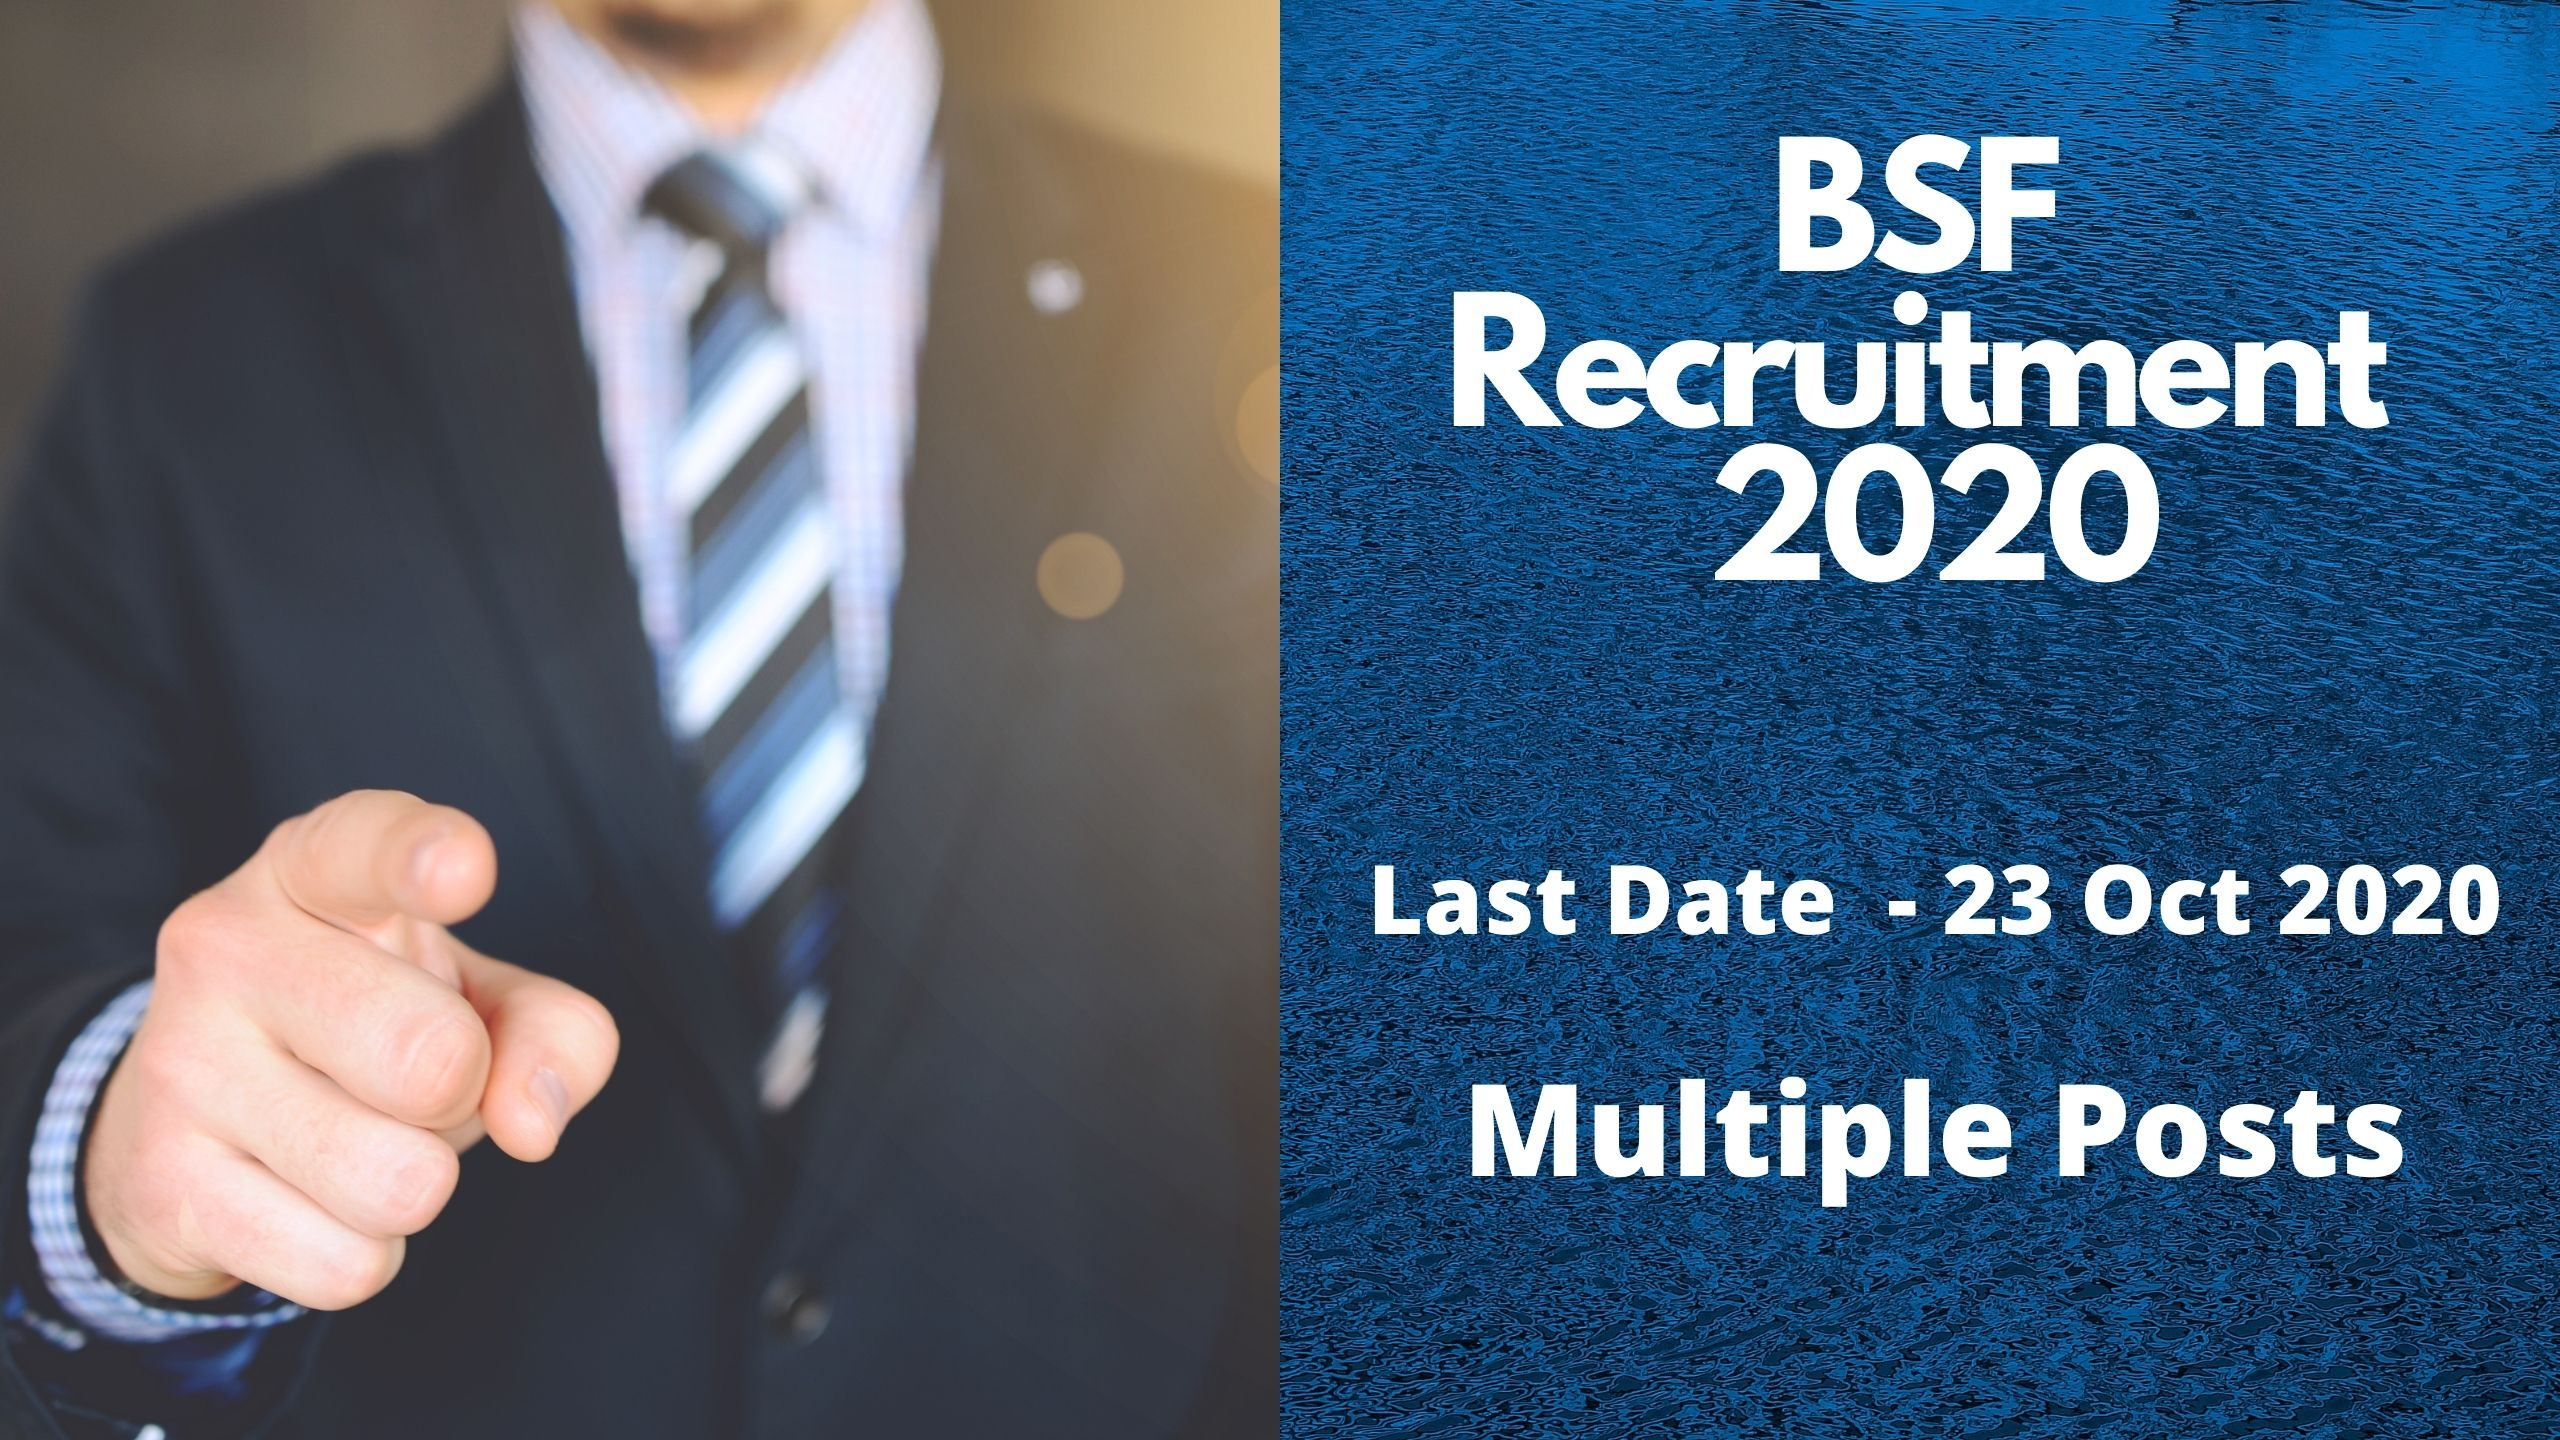 BSF Recruitment 2020